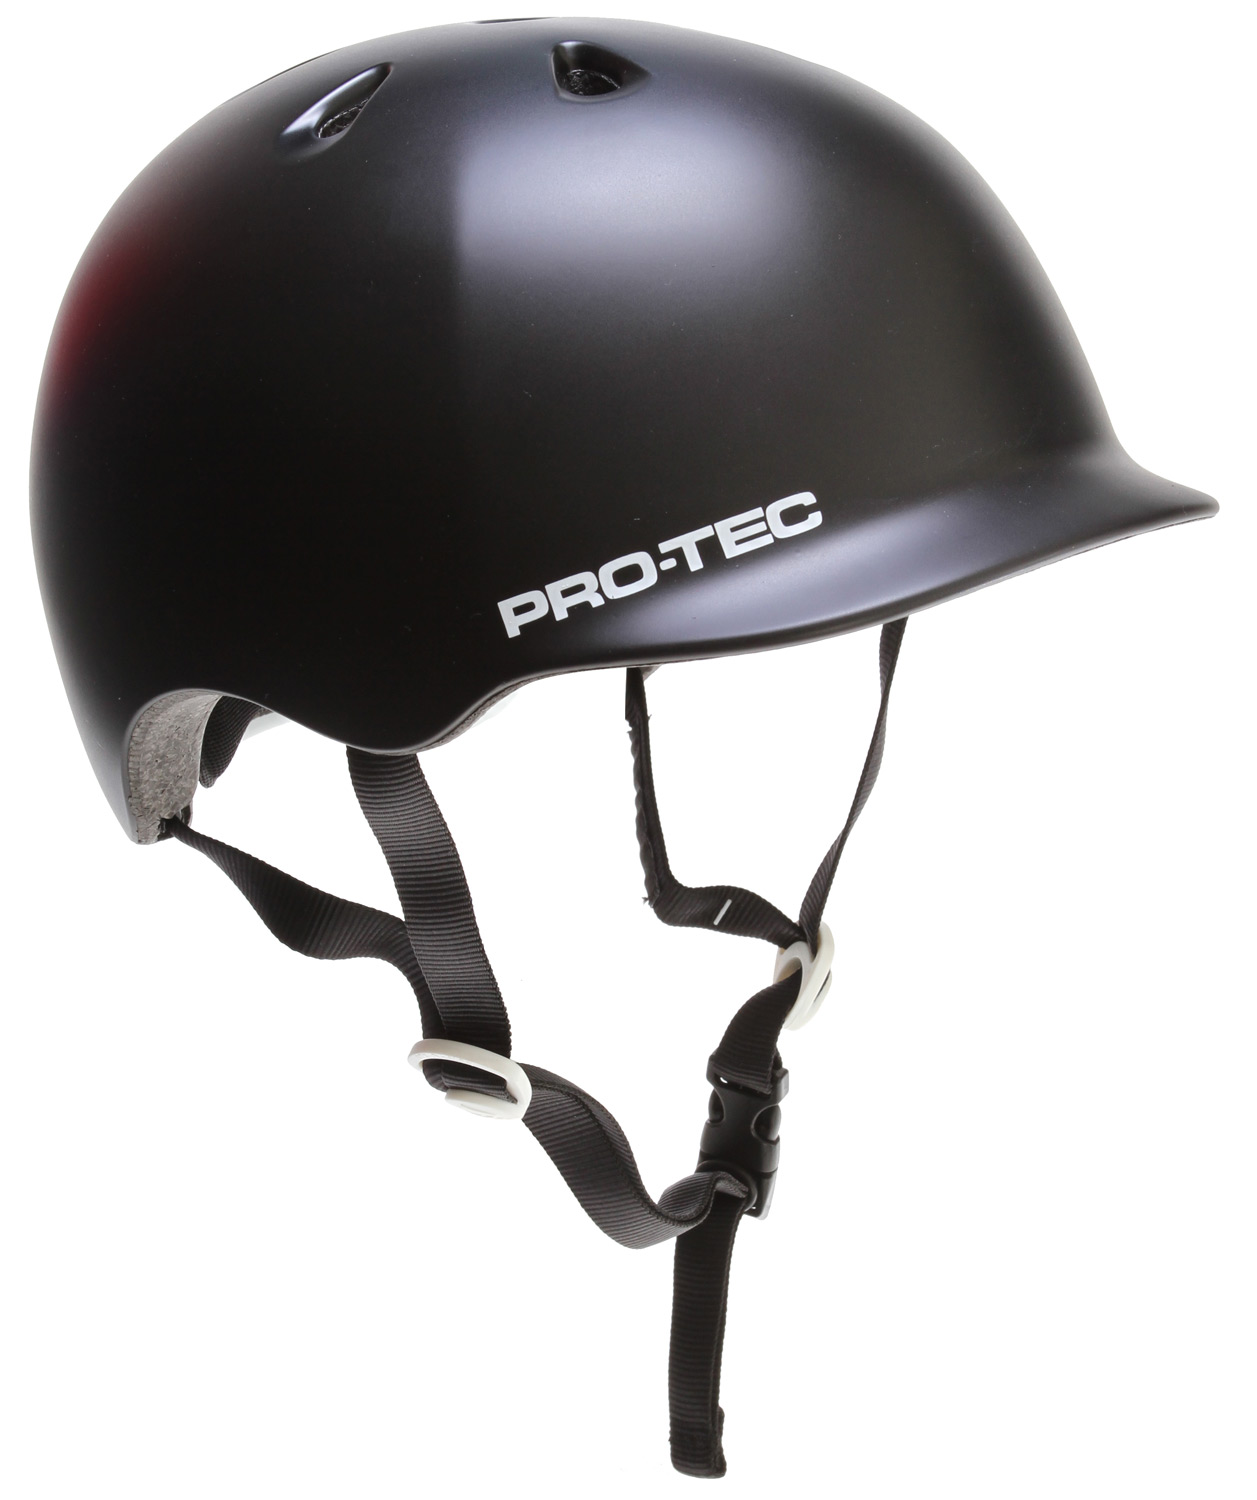 Skateboard The Riot Street is the newest addition to the Pro-tec line, bringing you a lightweight, low-profile fit and feel. Built around our Classic skate shape with visor styling, the Riot Street is the perfect choice for the urban commuter.Key Features of the Protec Riot Street Bike Helmet: SHELL: In-mold micro shell LINER: EPS impact liner INTERIOR: Die-cut PU foam padding with laminated Nylex VENTILATION: 7 open vents with internal venting system FIT: 6 sizes / 3 shell breaks CERTIFICATION: CPSC 1203, CE 1078 CLEAR REFLECTIVE STICKERS: Placed on the back of the helmet - $89.99